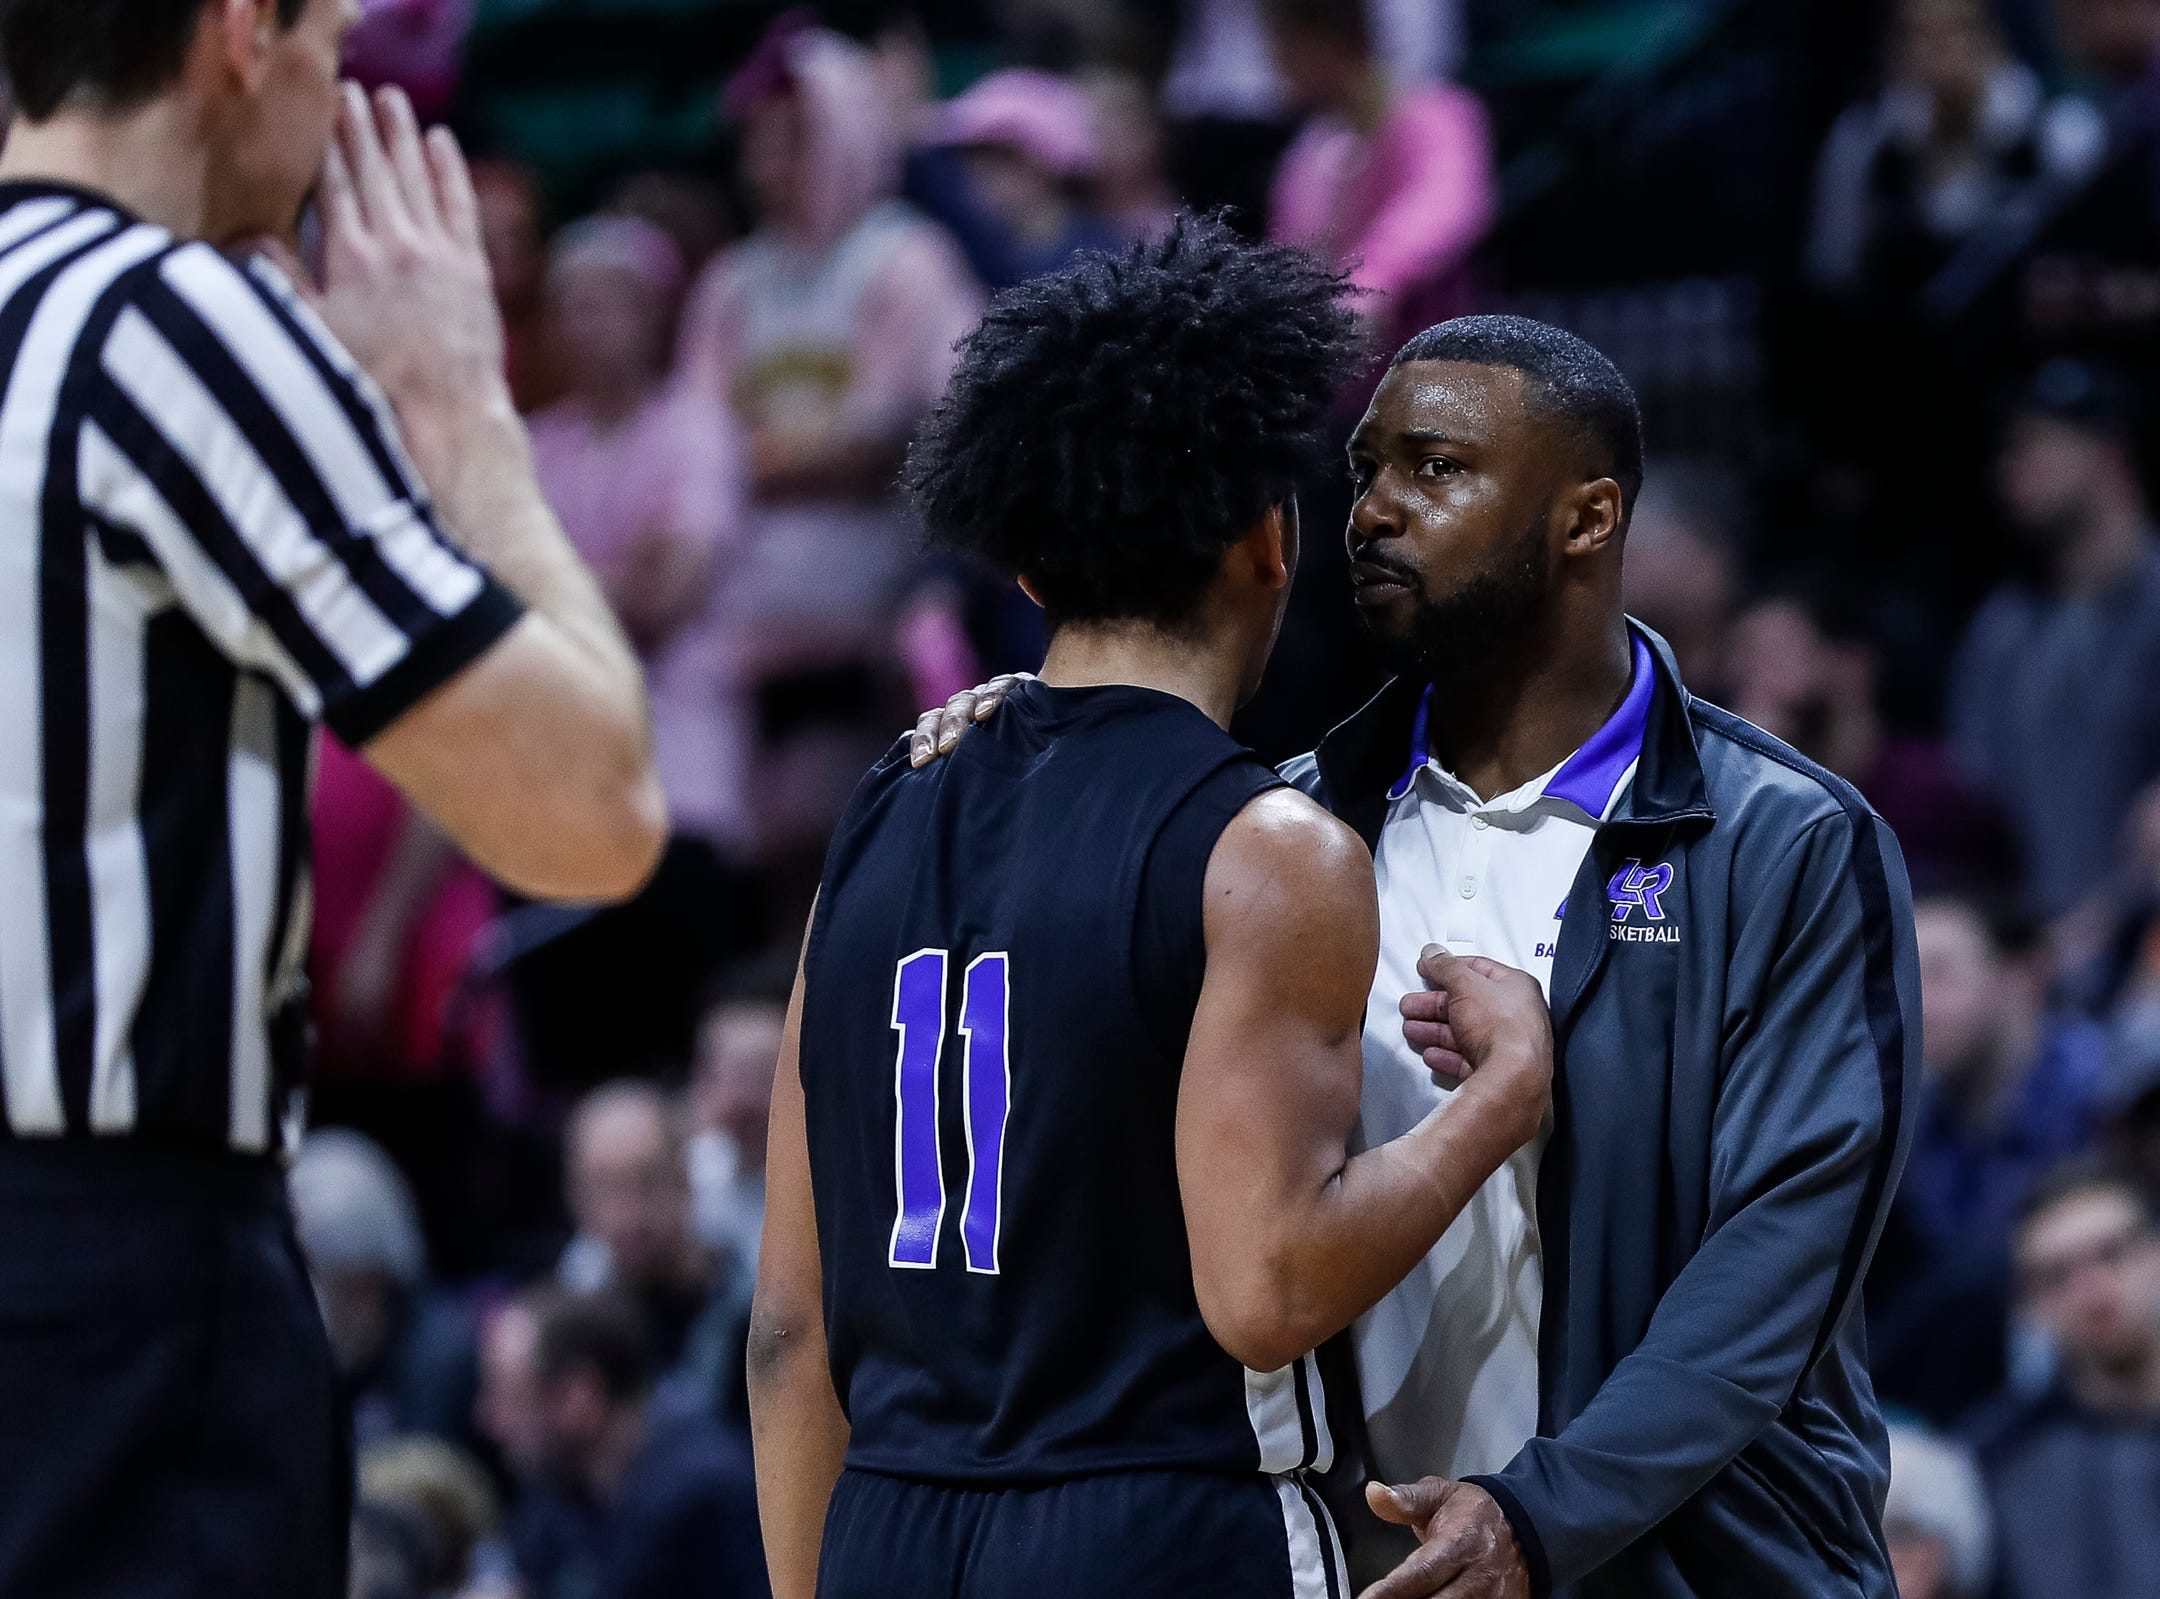 Ypsilanti Lincoln head coach Jesse Davis talks to Trevon Davis (11) at the timeout during the first half of MHSAA Division 1 semifinal against Howell at the Breslin Center in East Lansing, Friday, March 15, 2019.